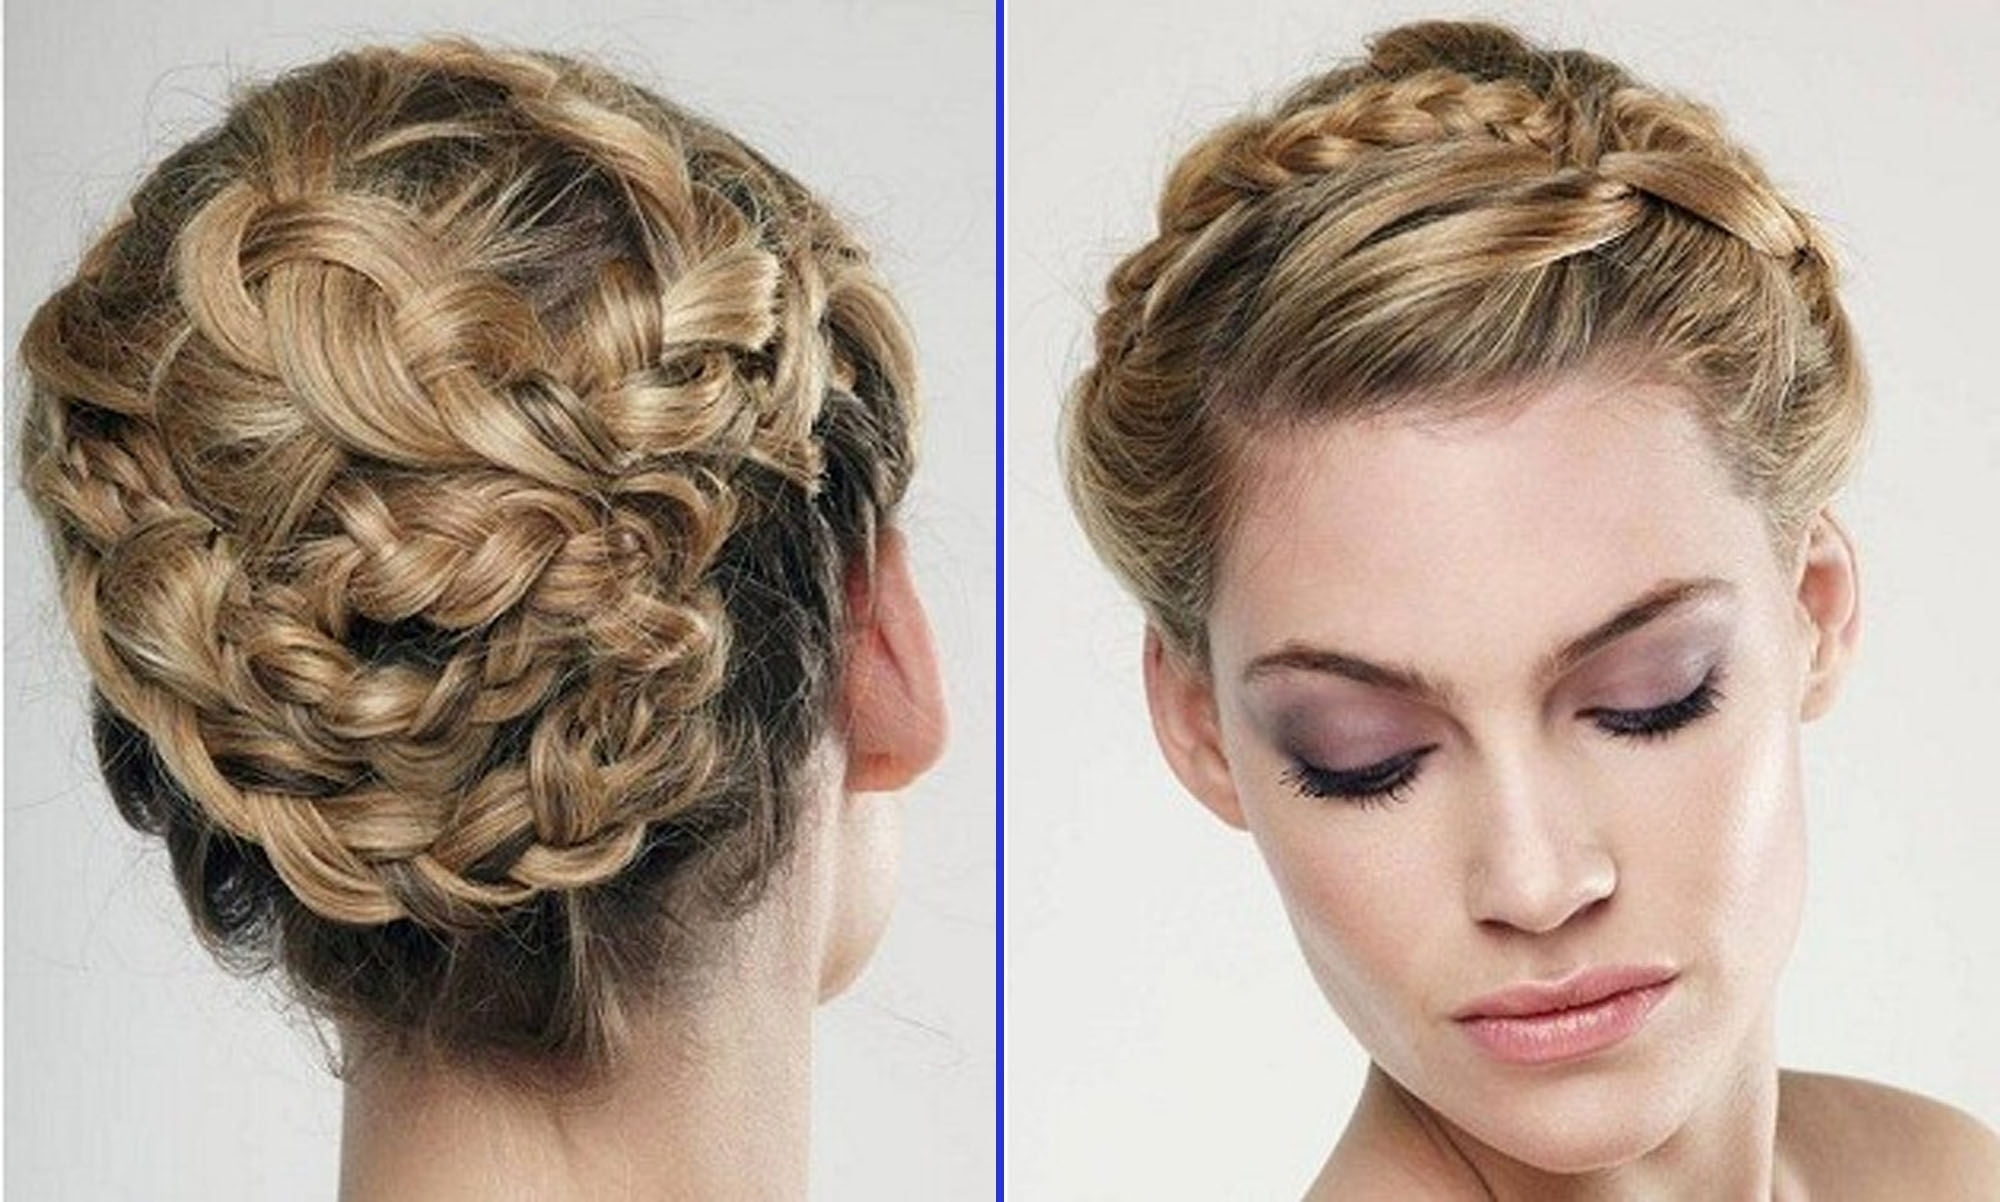 Short Wedding Hairstyles Braid Are Style Bridal Hairstyle | Medium Within Short Wedding Updo Hairstyles (View 10 of 15)